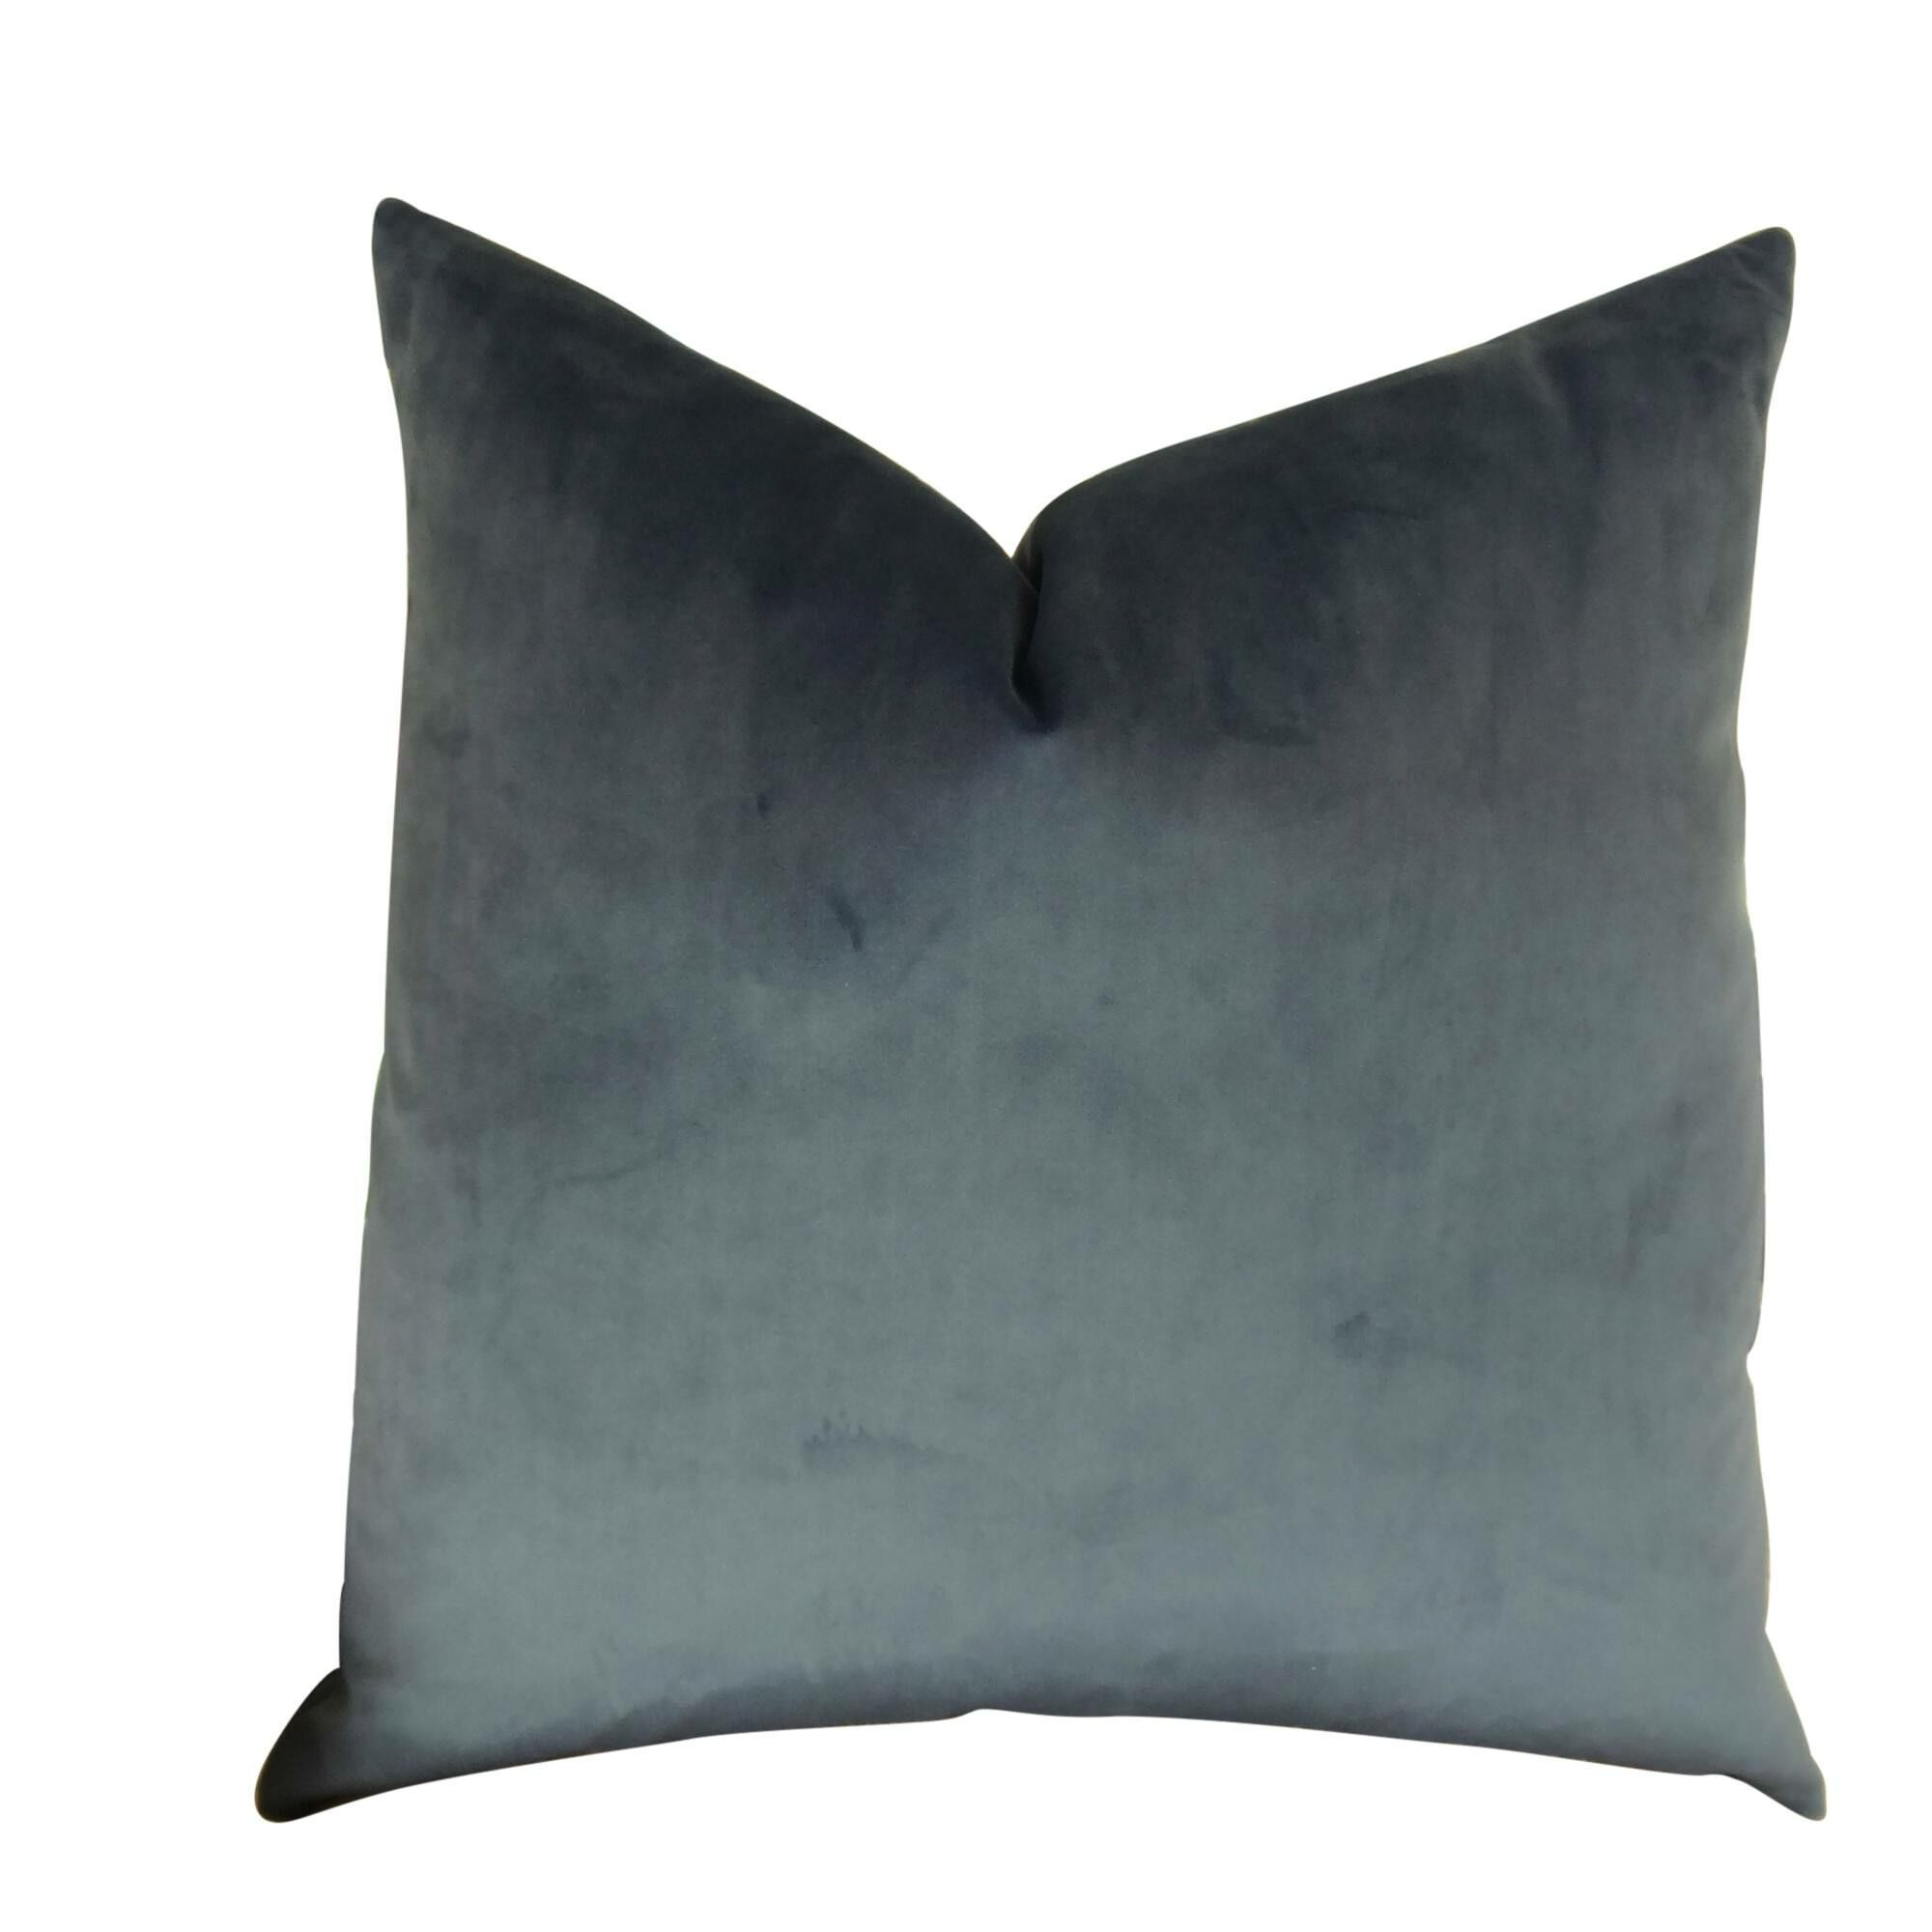 Kimsey Solid Luxury Pillow Fill Material: Cover Only - No Insert, Size: 20